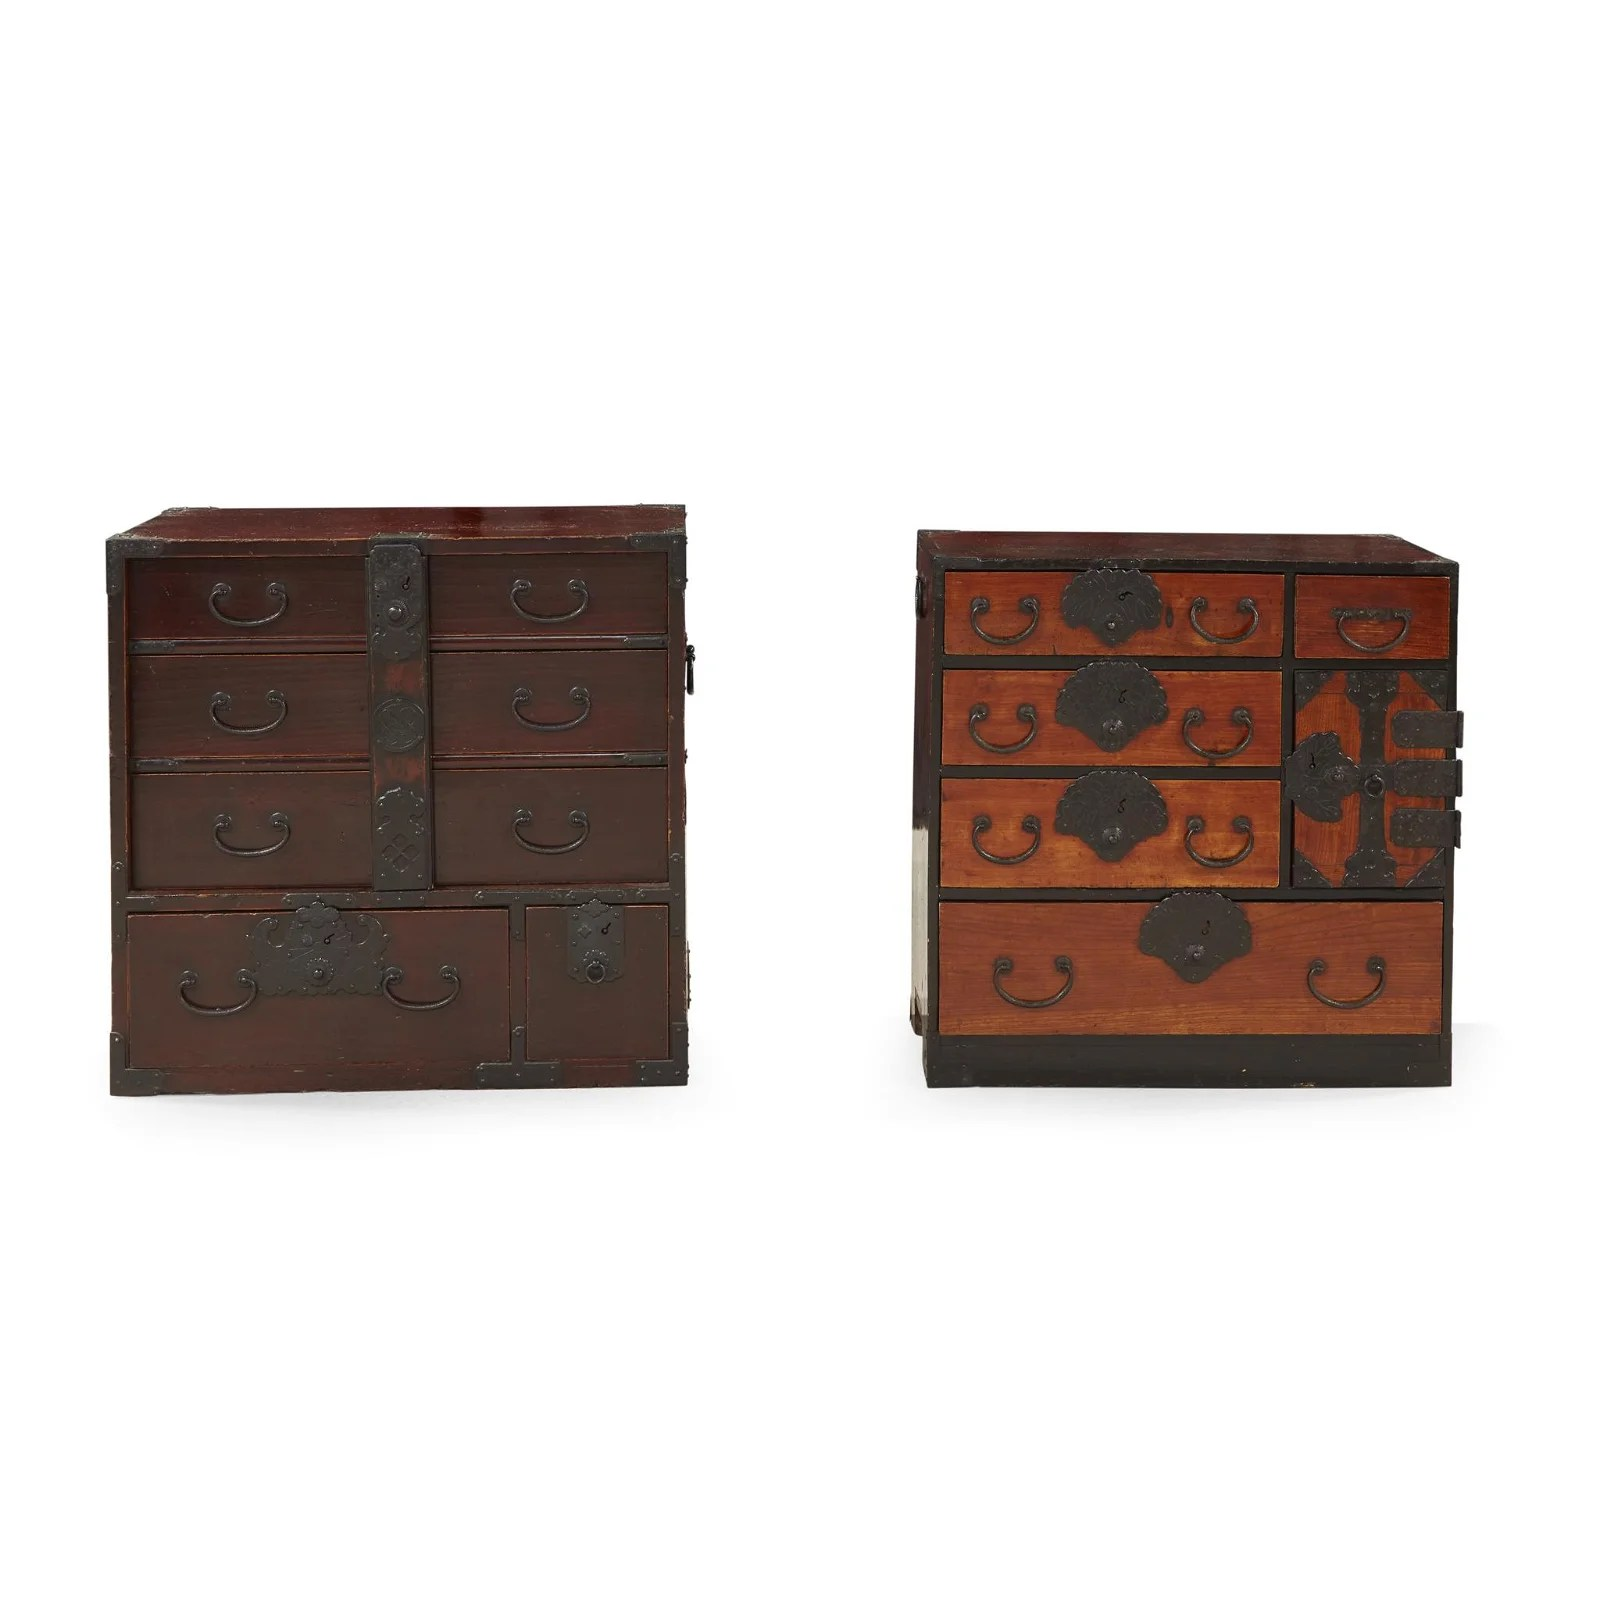 Two small Japanese iron-mounted tansu,